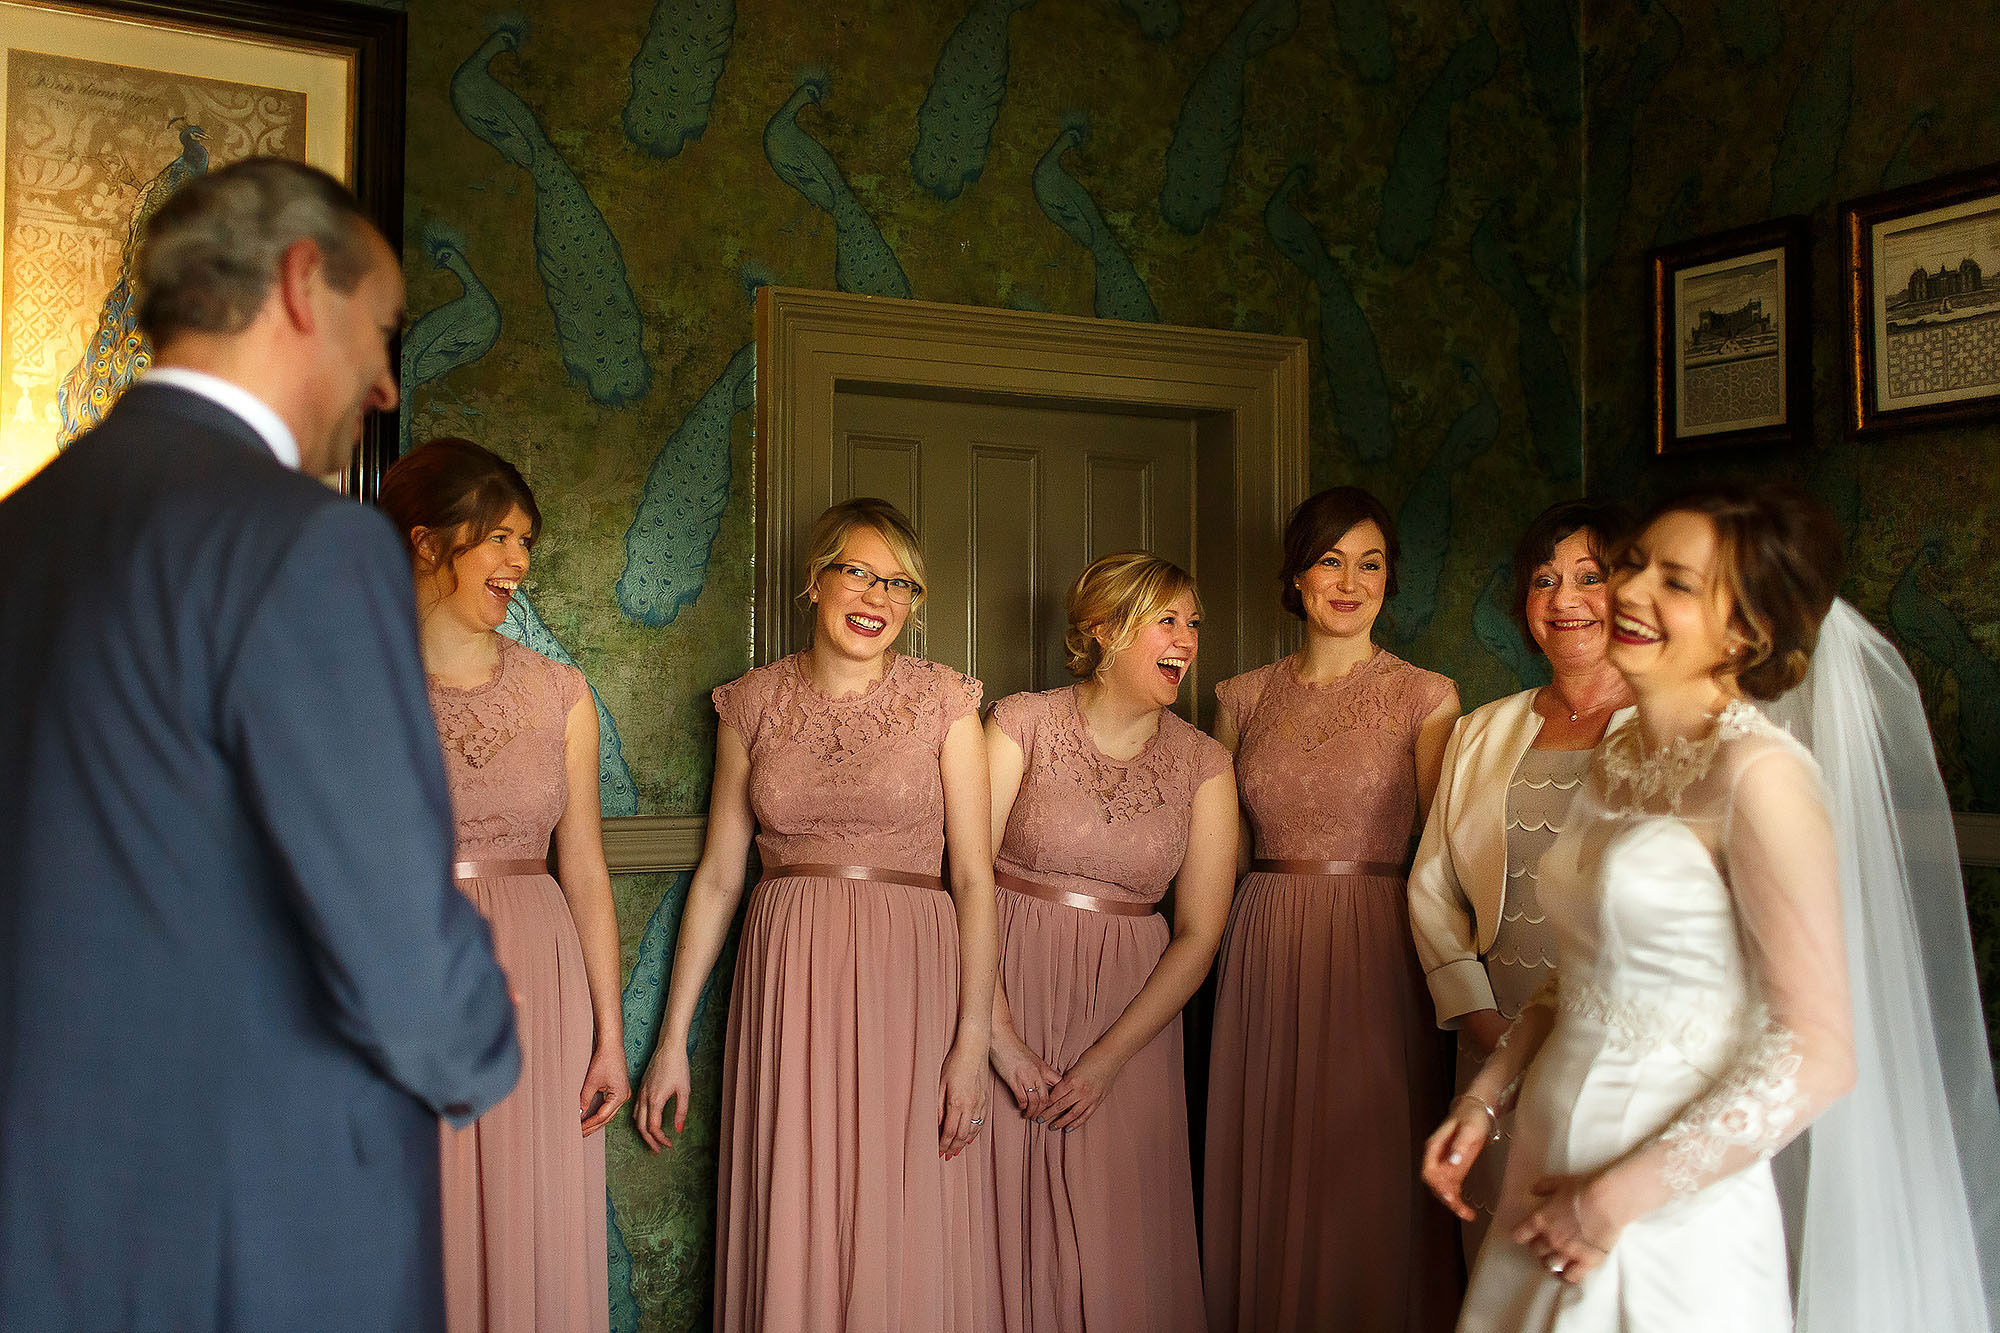 Bridesmaids all lined up wearing pink looking at the bride | Mitton Hall wedding photographs by Toni Darcy Photography